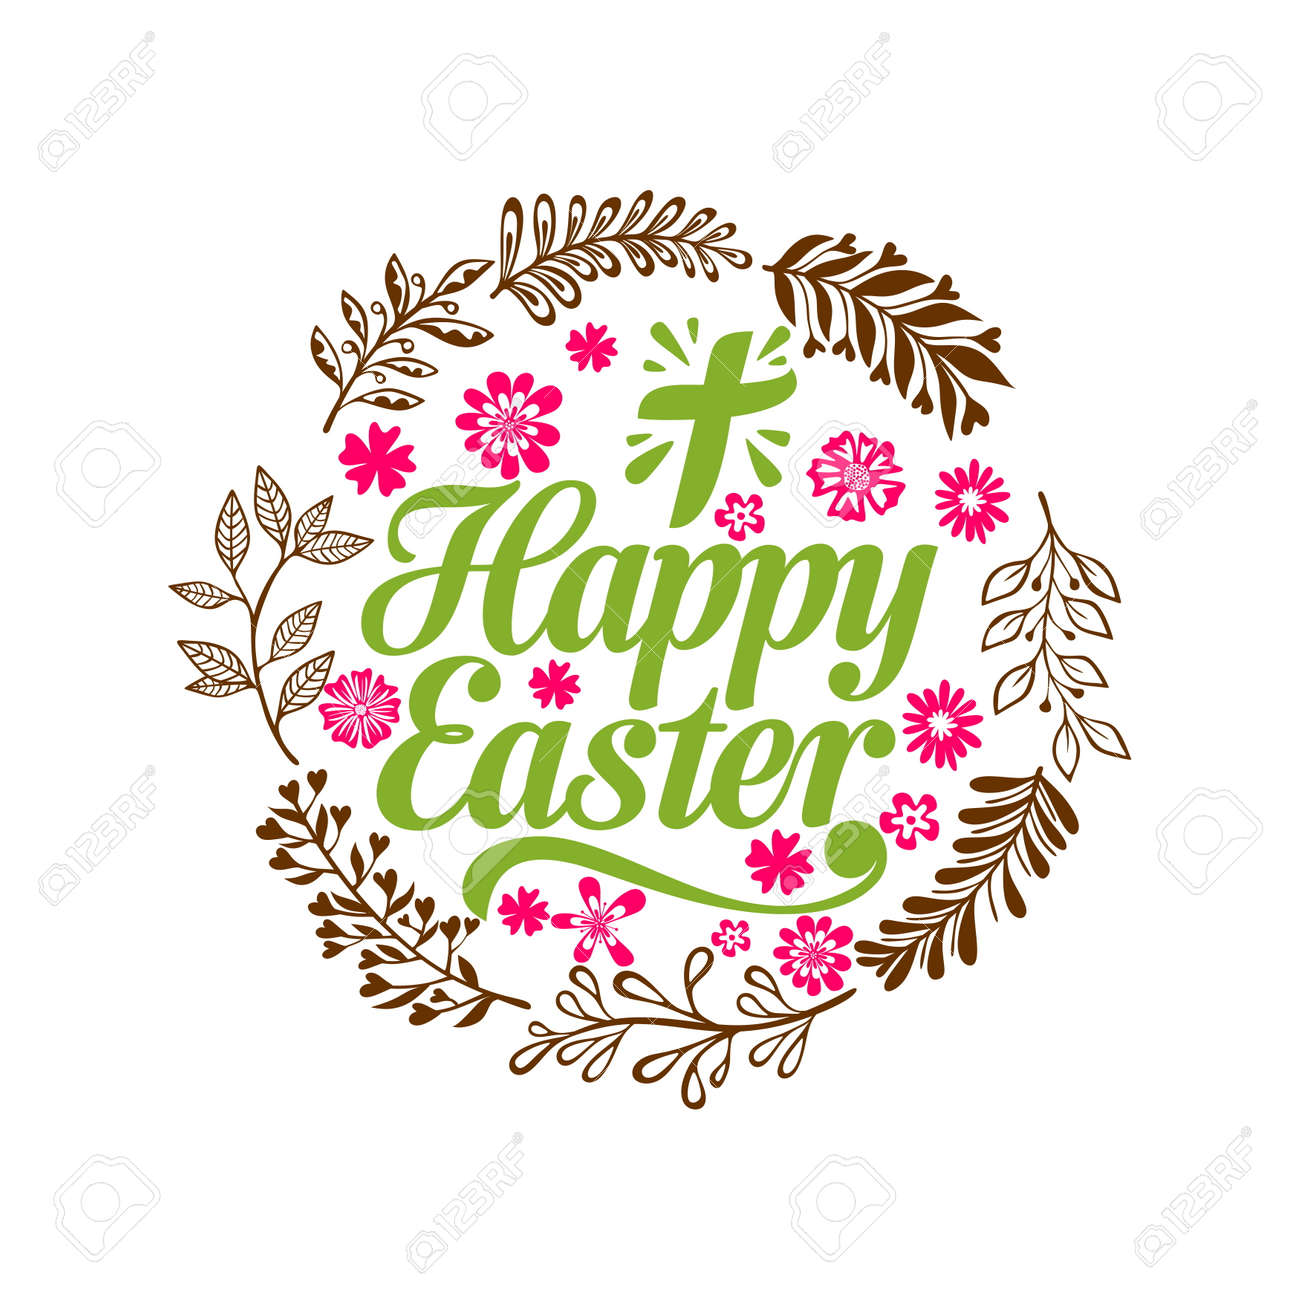 hight resolution of happy easter lettering and graphic elements cross of jesus christ stock vector